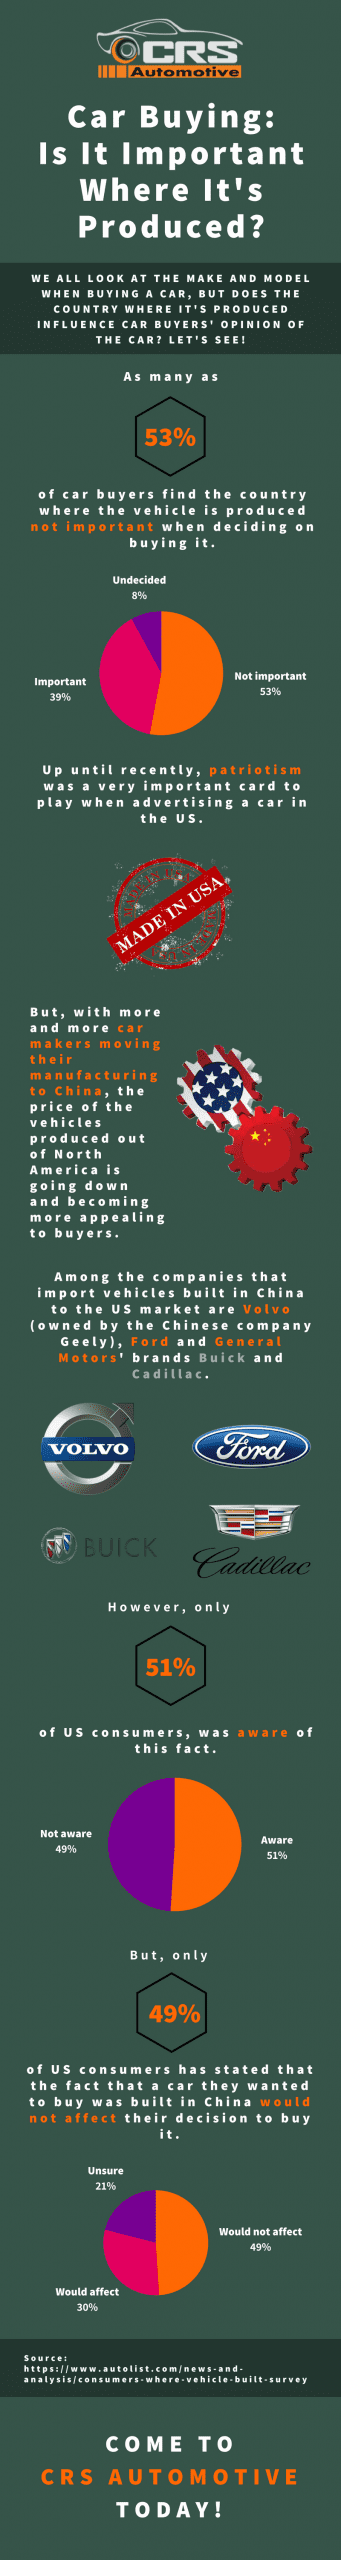 Car Buying - Is It Important Where It's Produced - INFOGRAPHIC